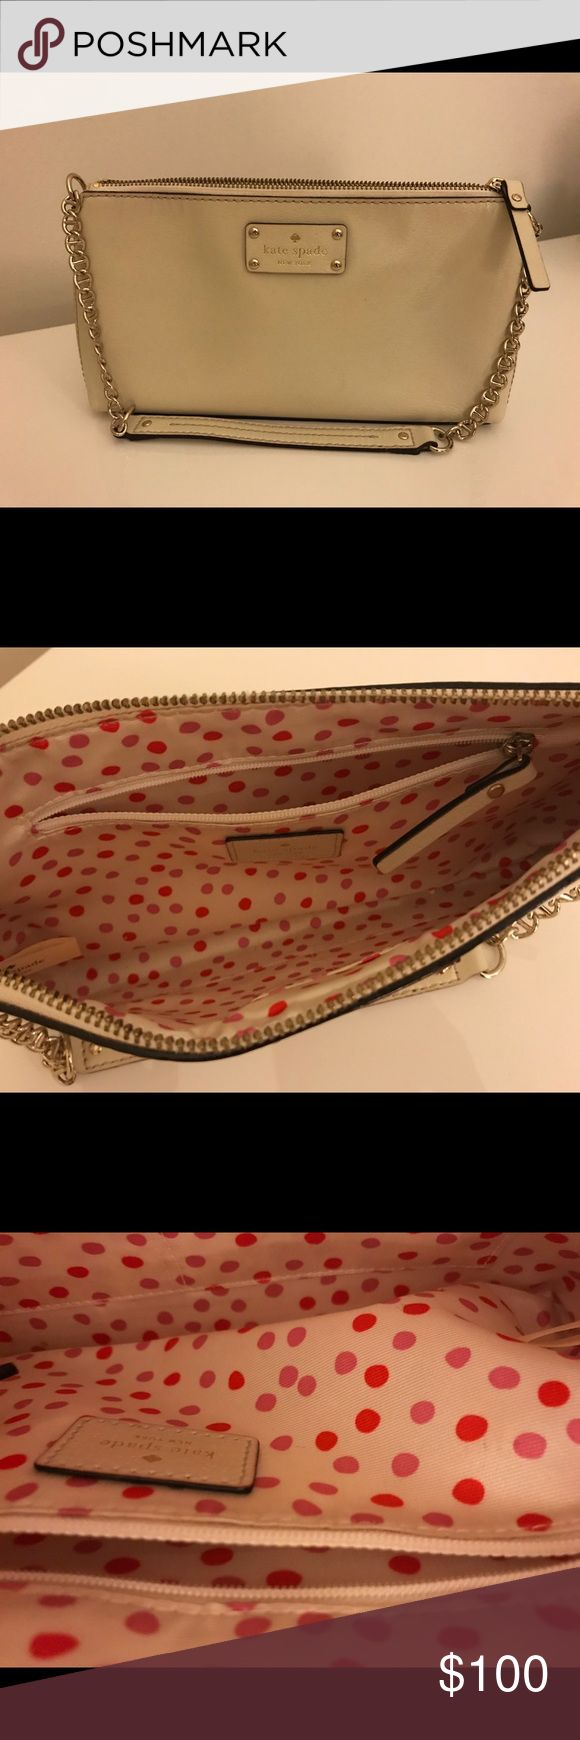 White Leather Kate Spade Shoulder Bag Crisp white Kate Spade leather shoulder bag. Chain and leather strap. Beautiful pink polka dot interior. Interior and exterior are like brand new. Very lightly worn, only a few times. kate spade Bags Shoulder Bags